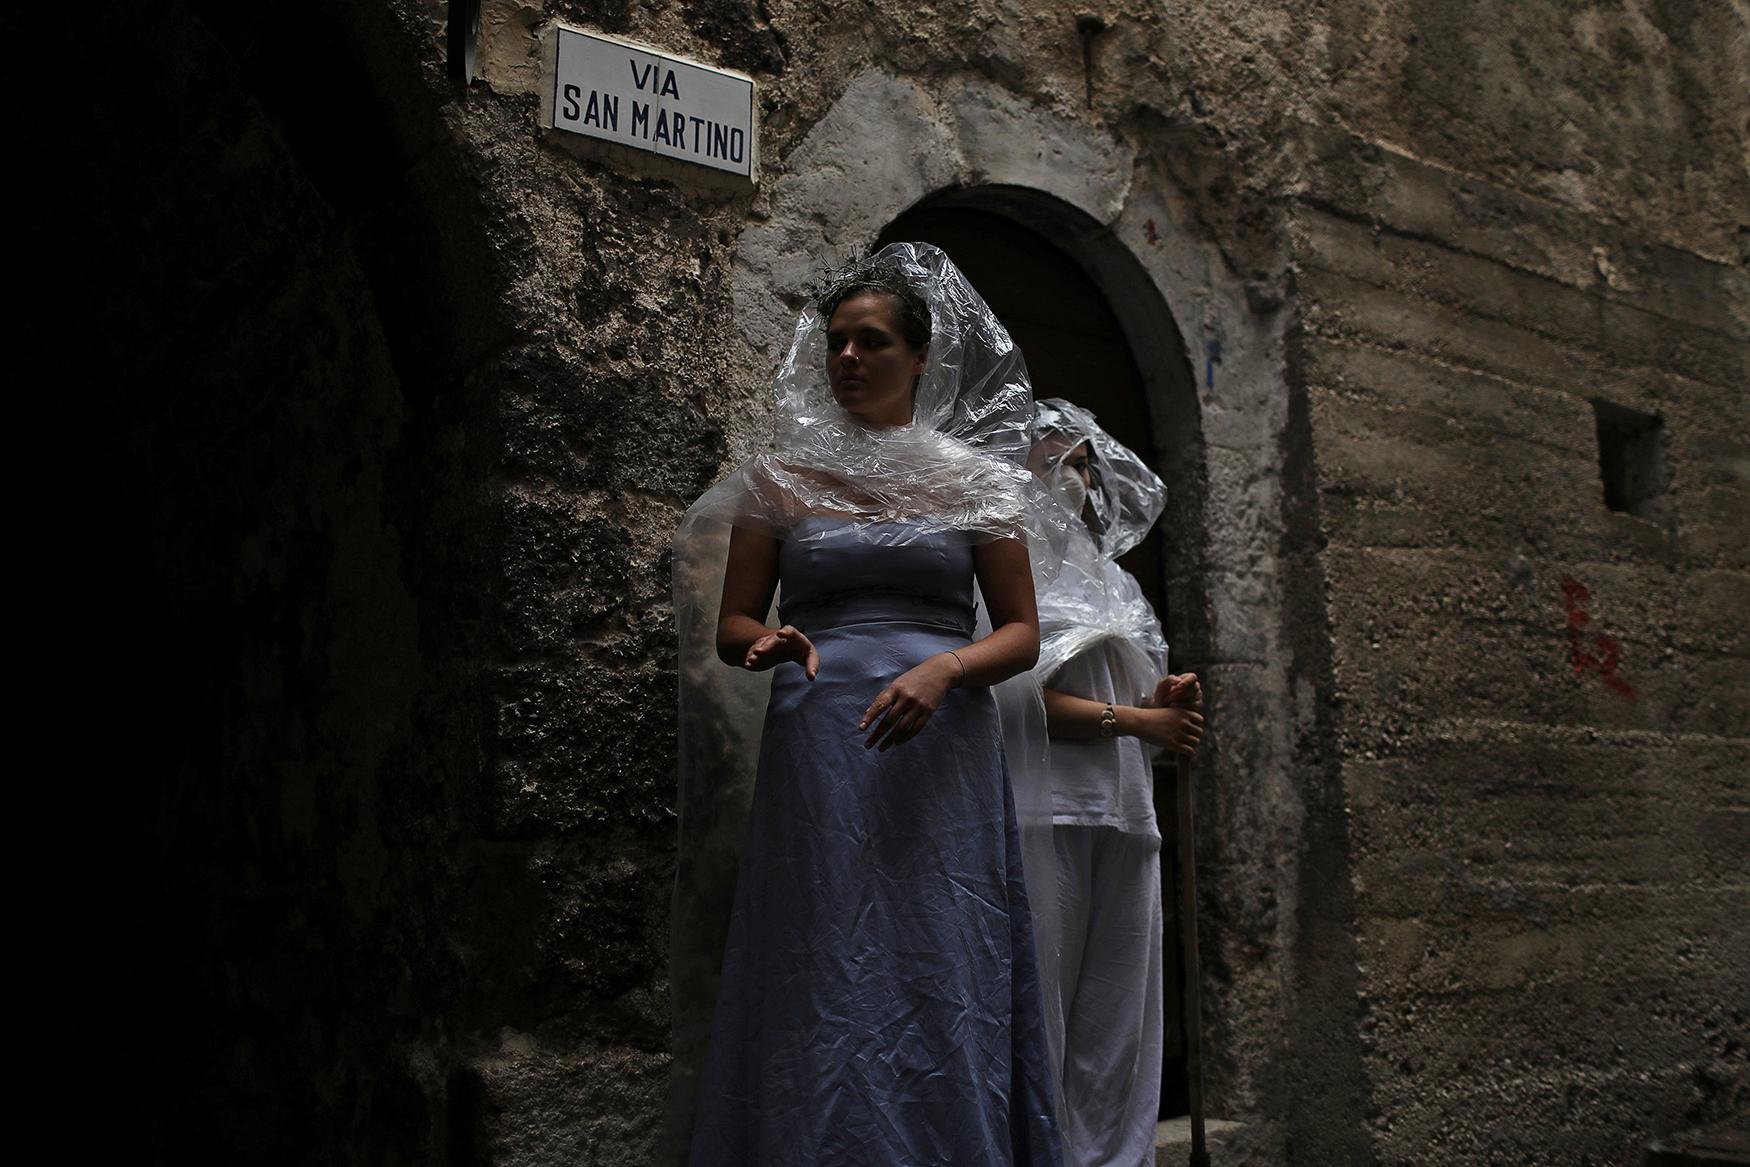 <p>Women wear costumes as part of an art installation in the mostly abandoned old center of the town of Castelvecchio in the province of L'Aquila in Abruzzo, inside the national park of the Gran Sasso e Monti della Laga, Italy, September 11, 2016. (Photo: Siegfried Modola/Reuters) </p>